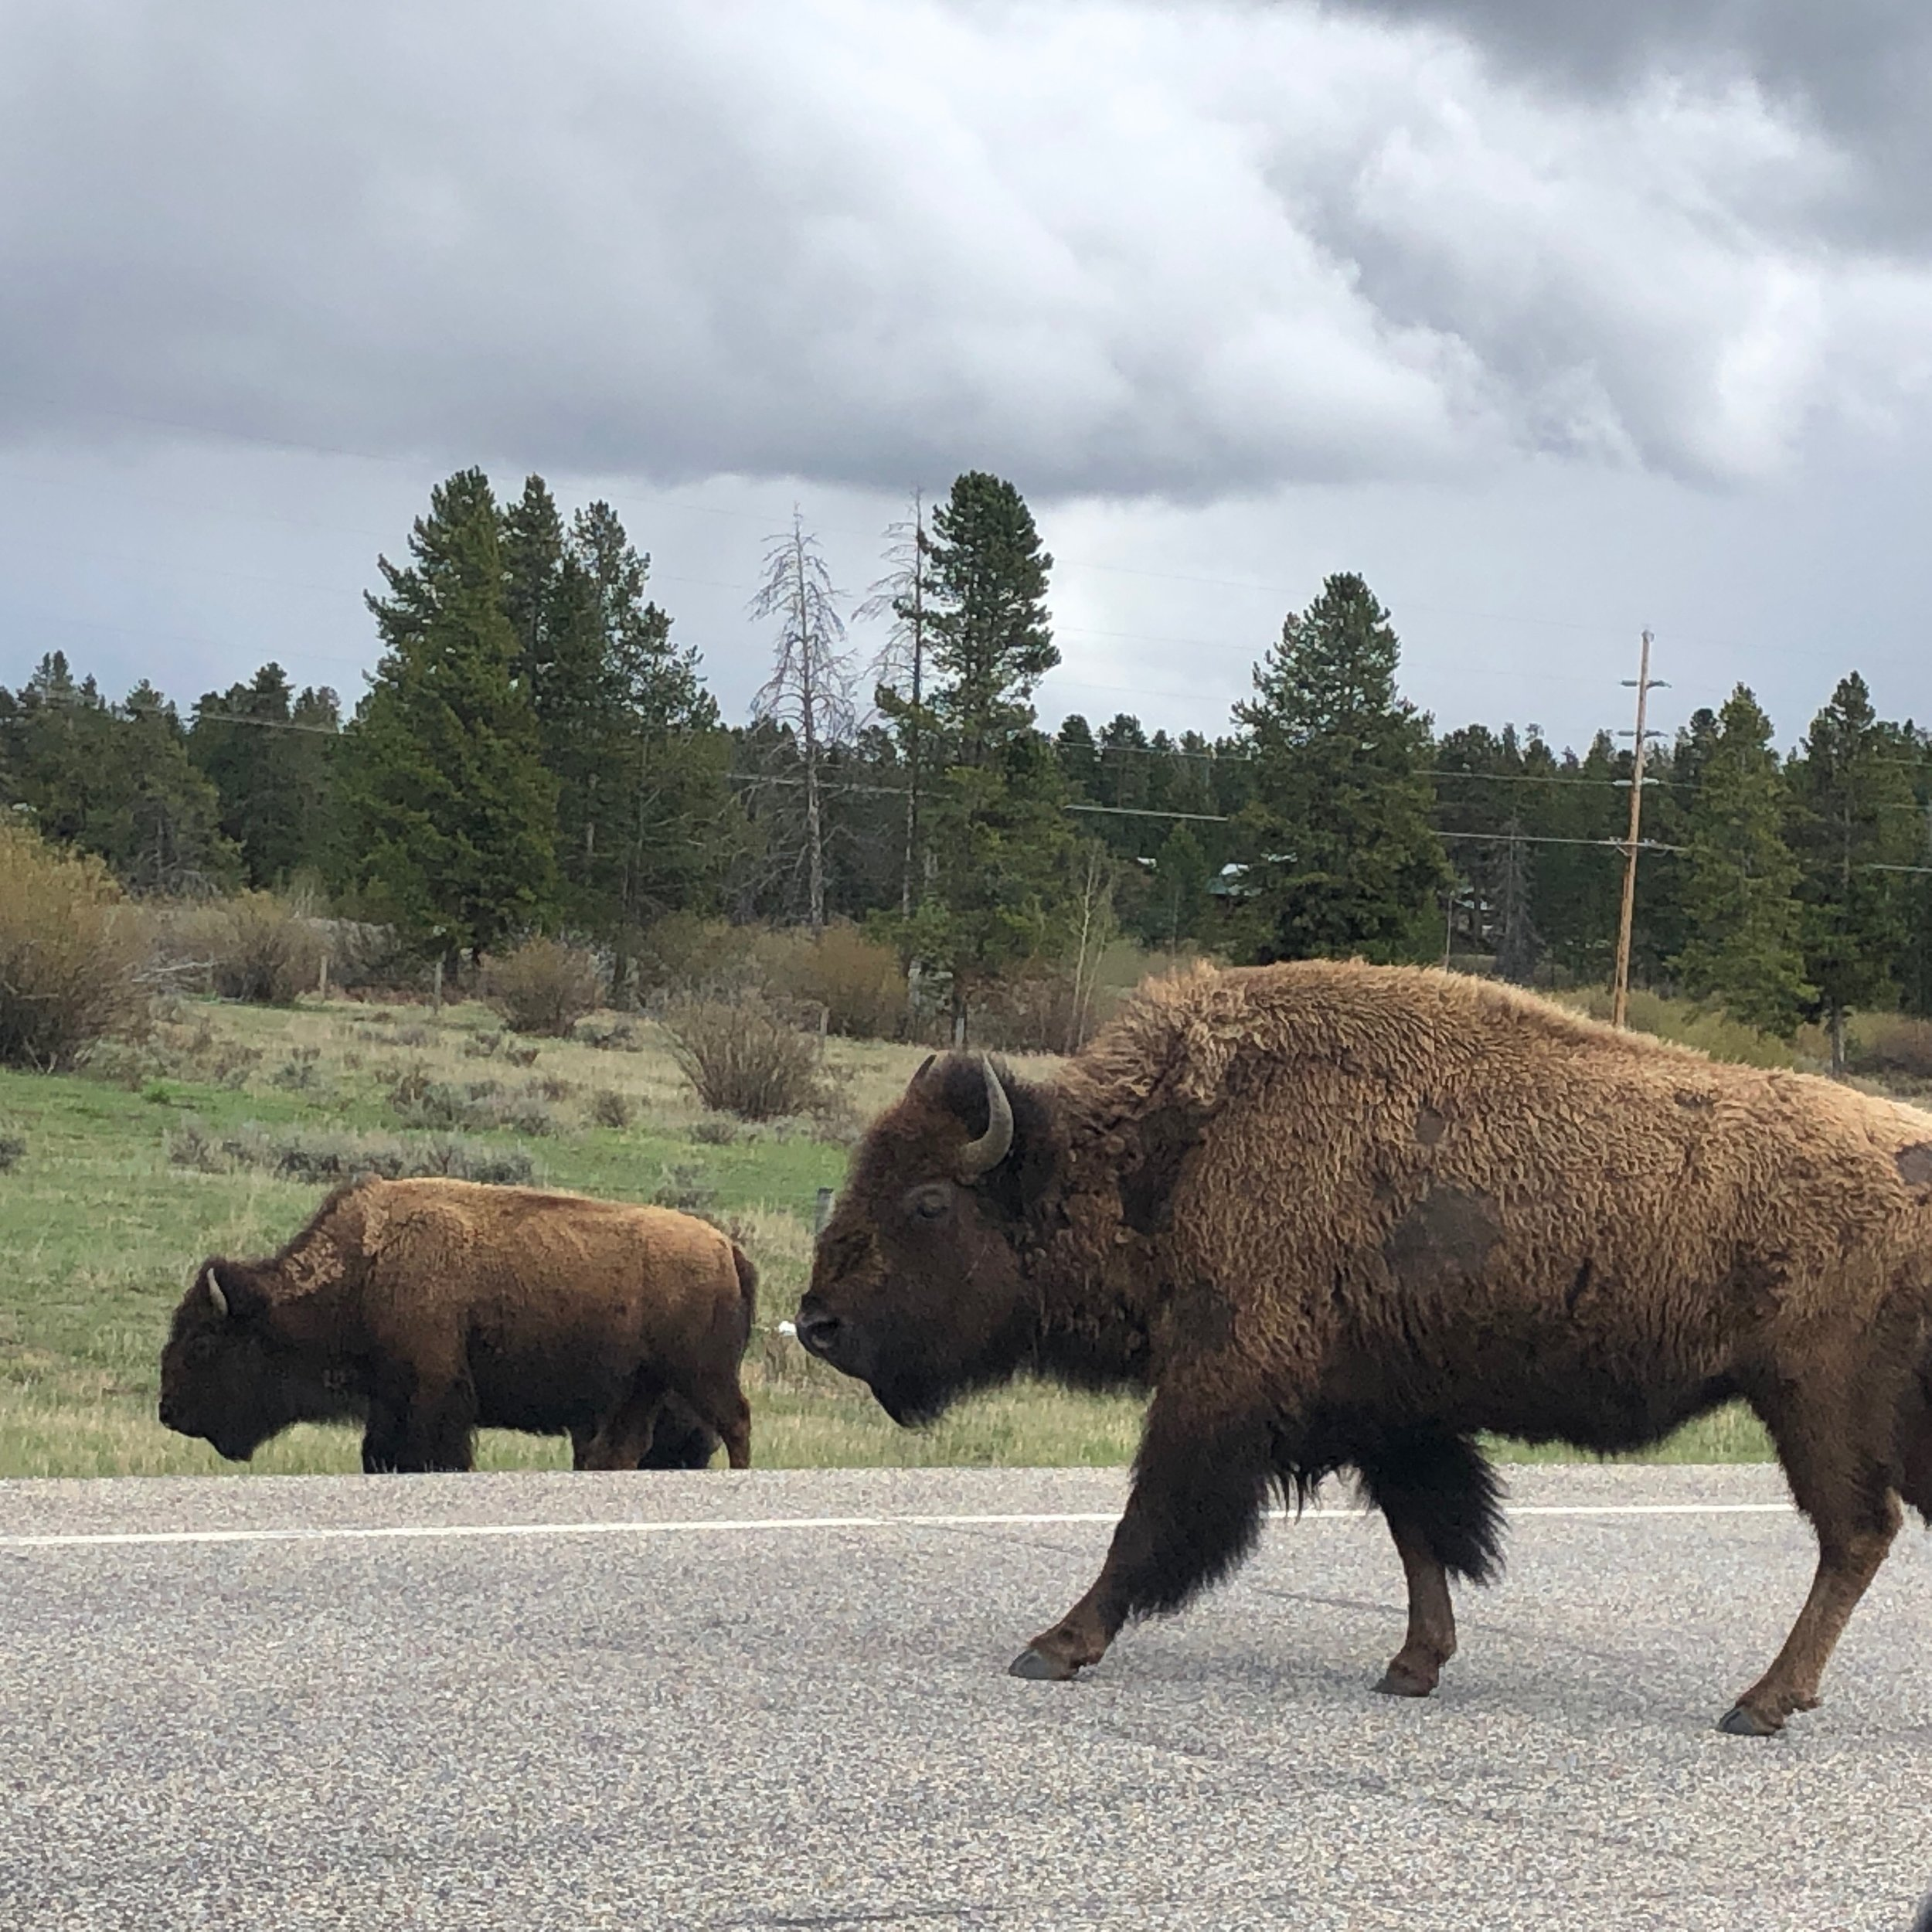 drive slowly, cause bison can move fast and be in the road before you know it.